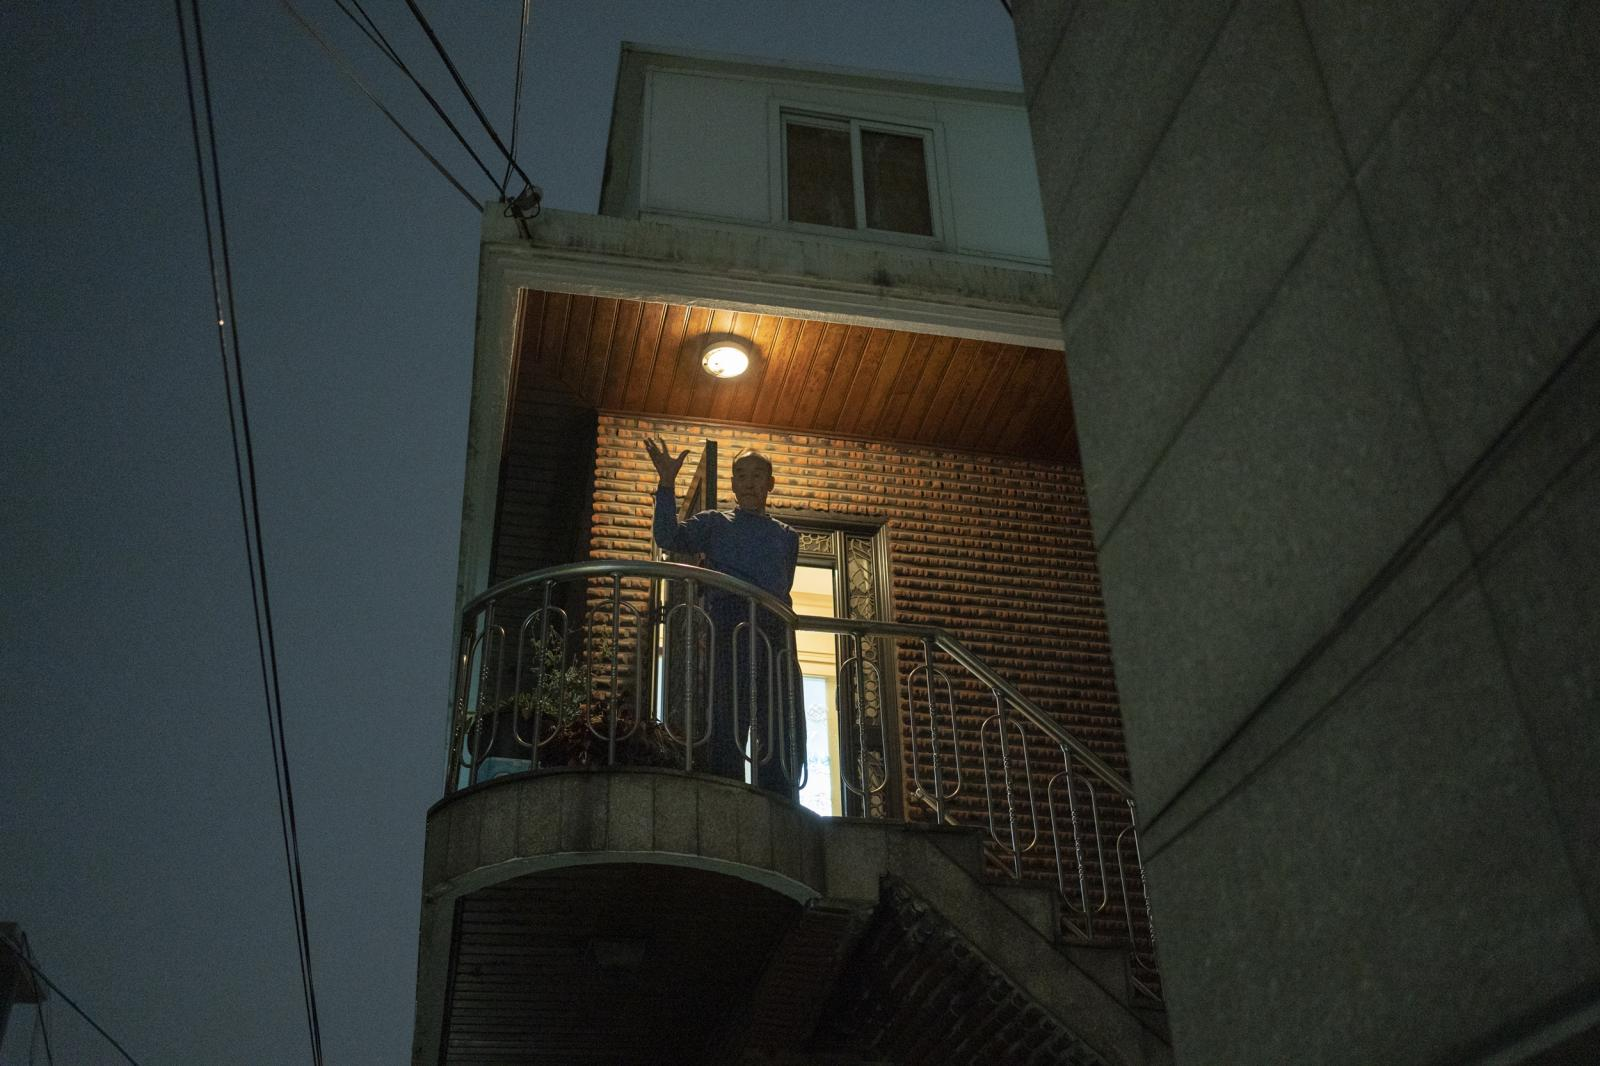 Younggil Jo waves goodbye from his porch at his home in Seoul, South Korea.